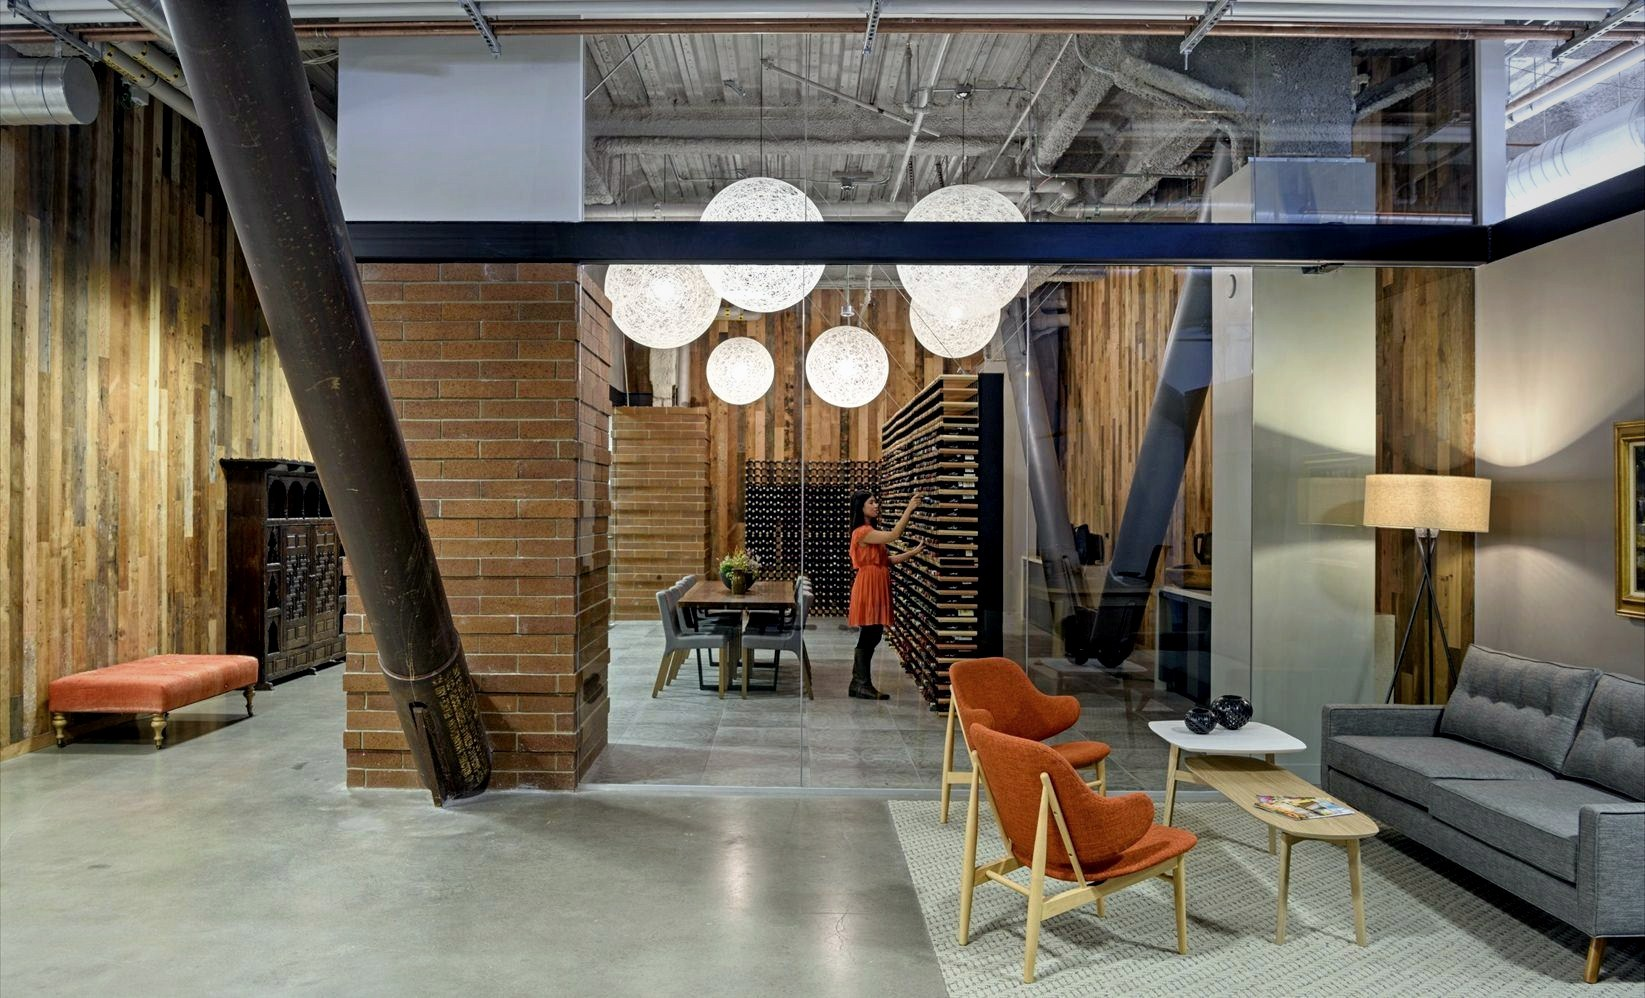 Special office design for Sunshine Magz with distinctive indoor characters designed in industrial and modern mix style (9)